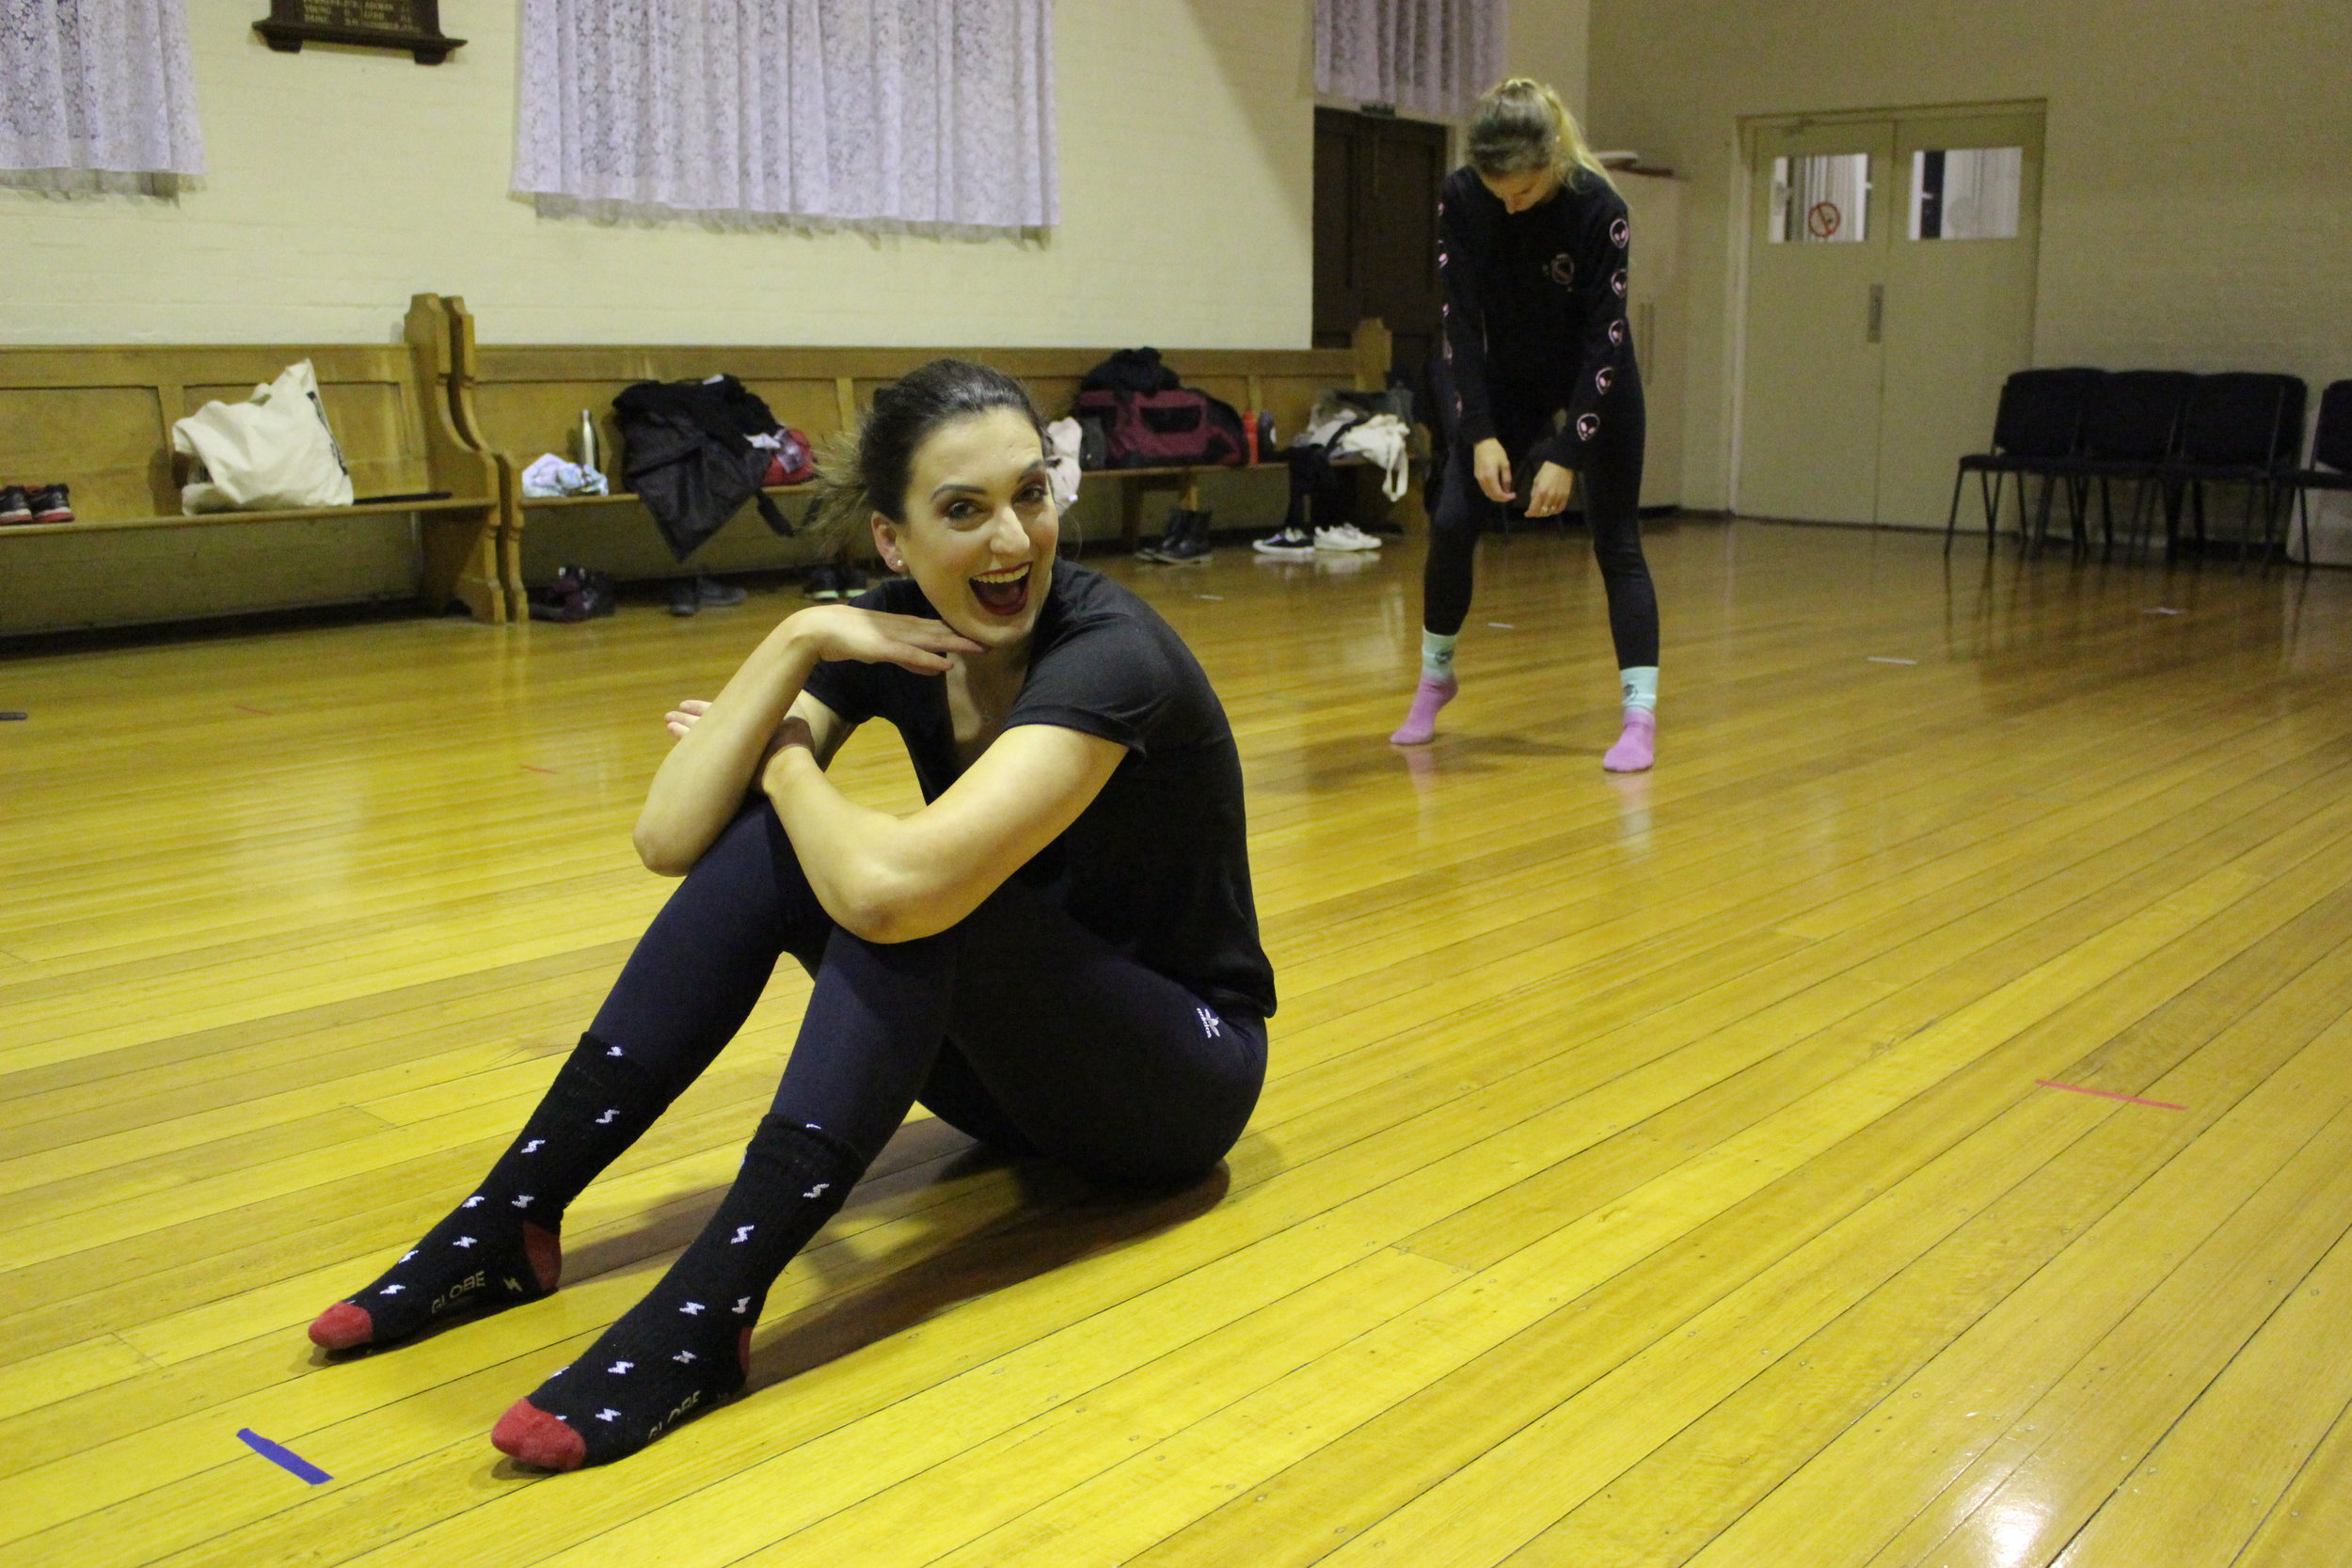 Megan Breguet having fun at rehearsals.